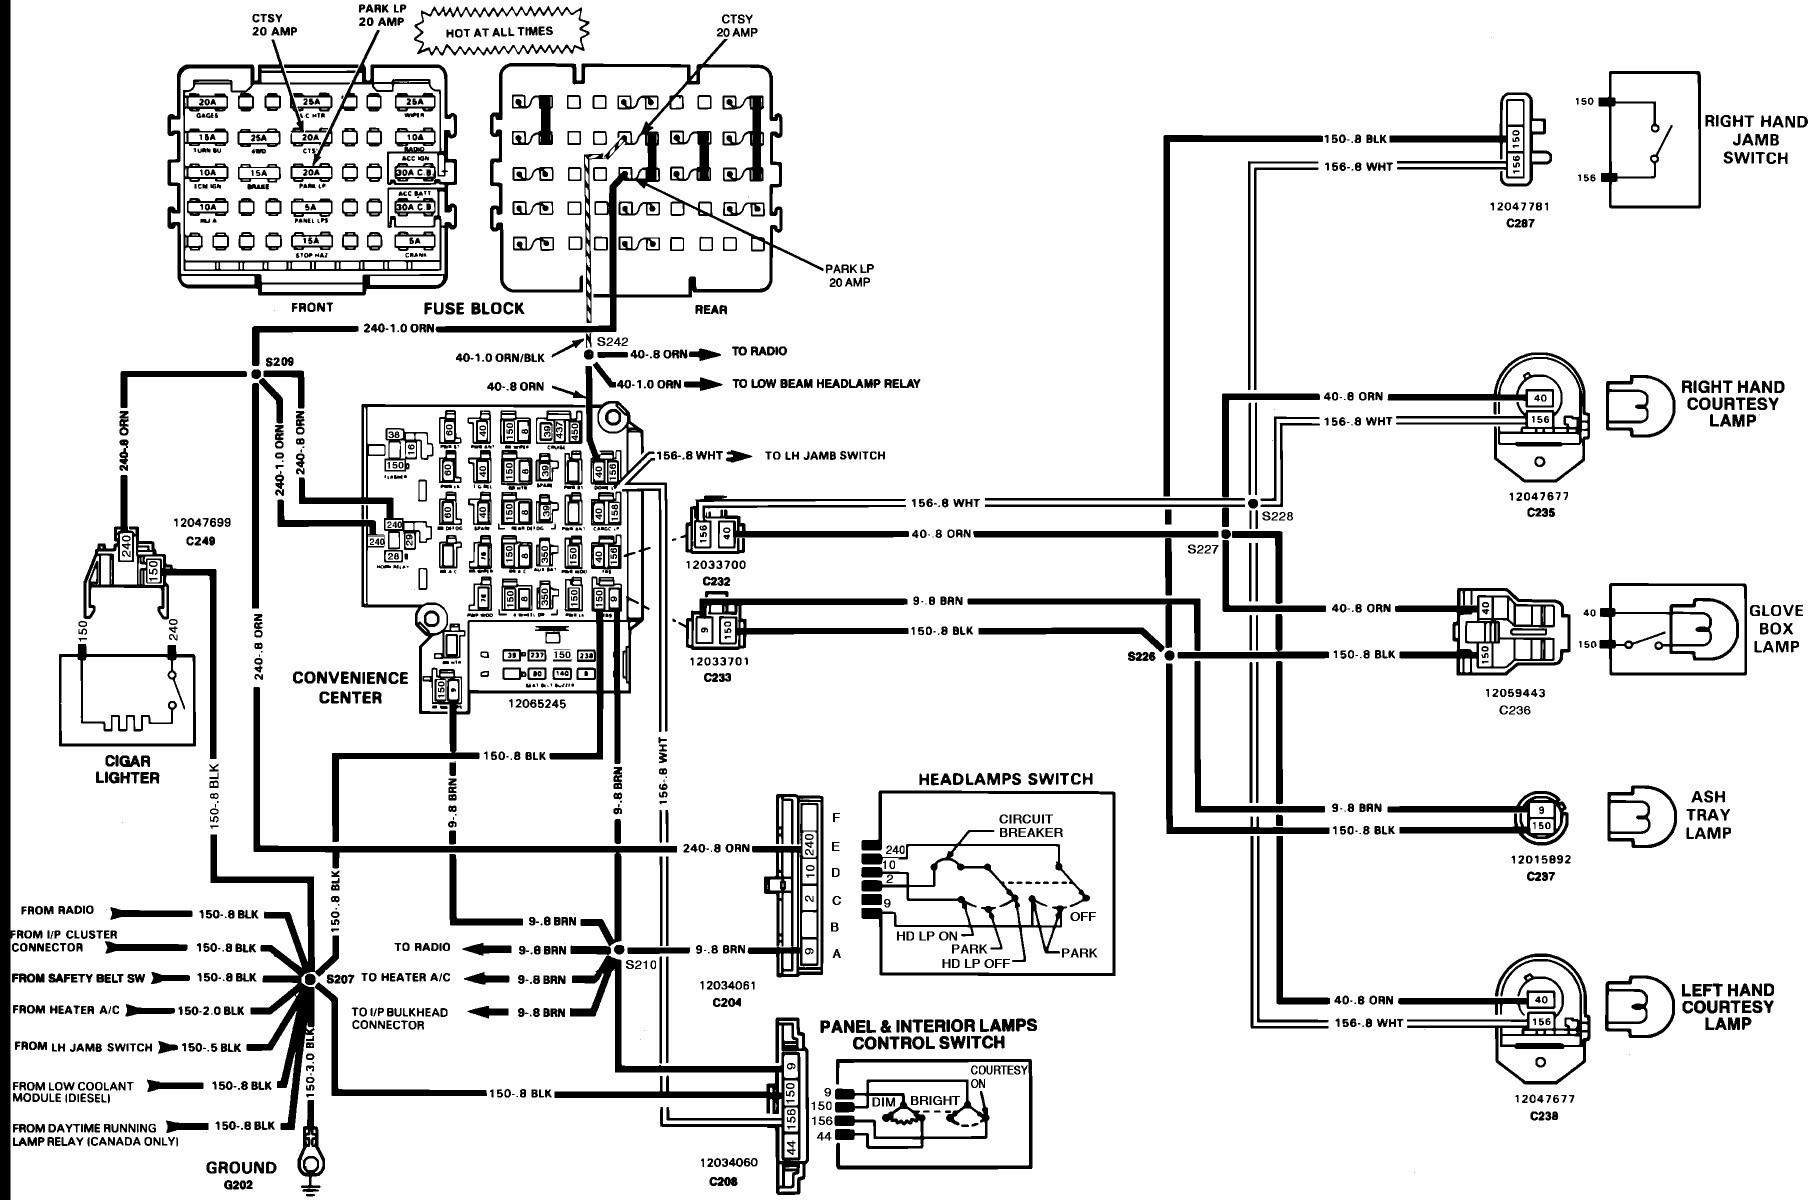 Subaru Wiring Diagram Secondary Air Valves